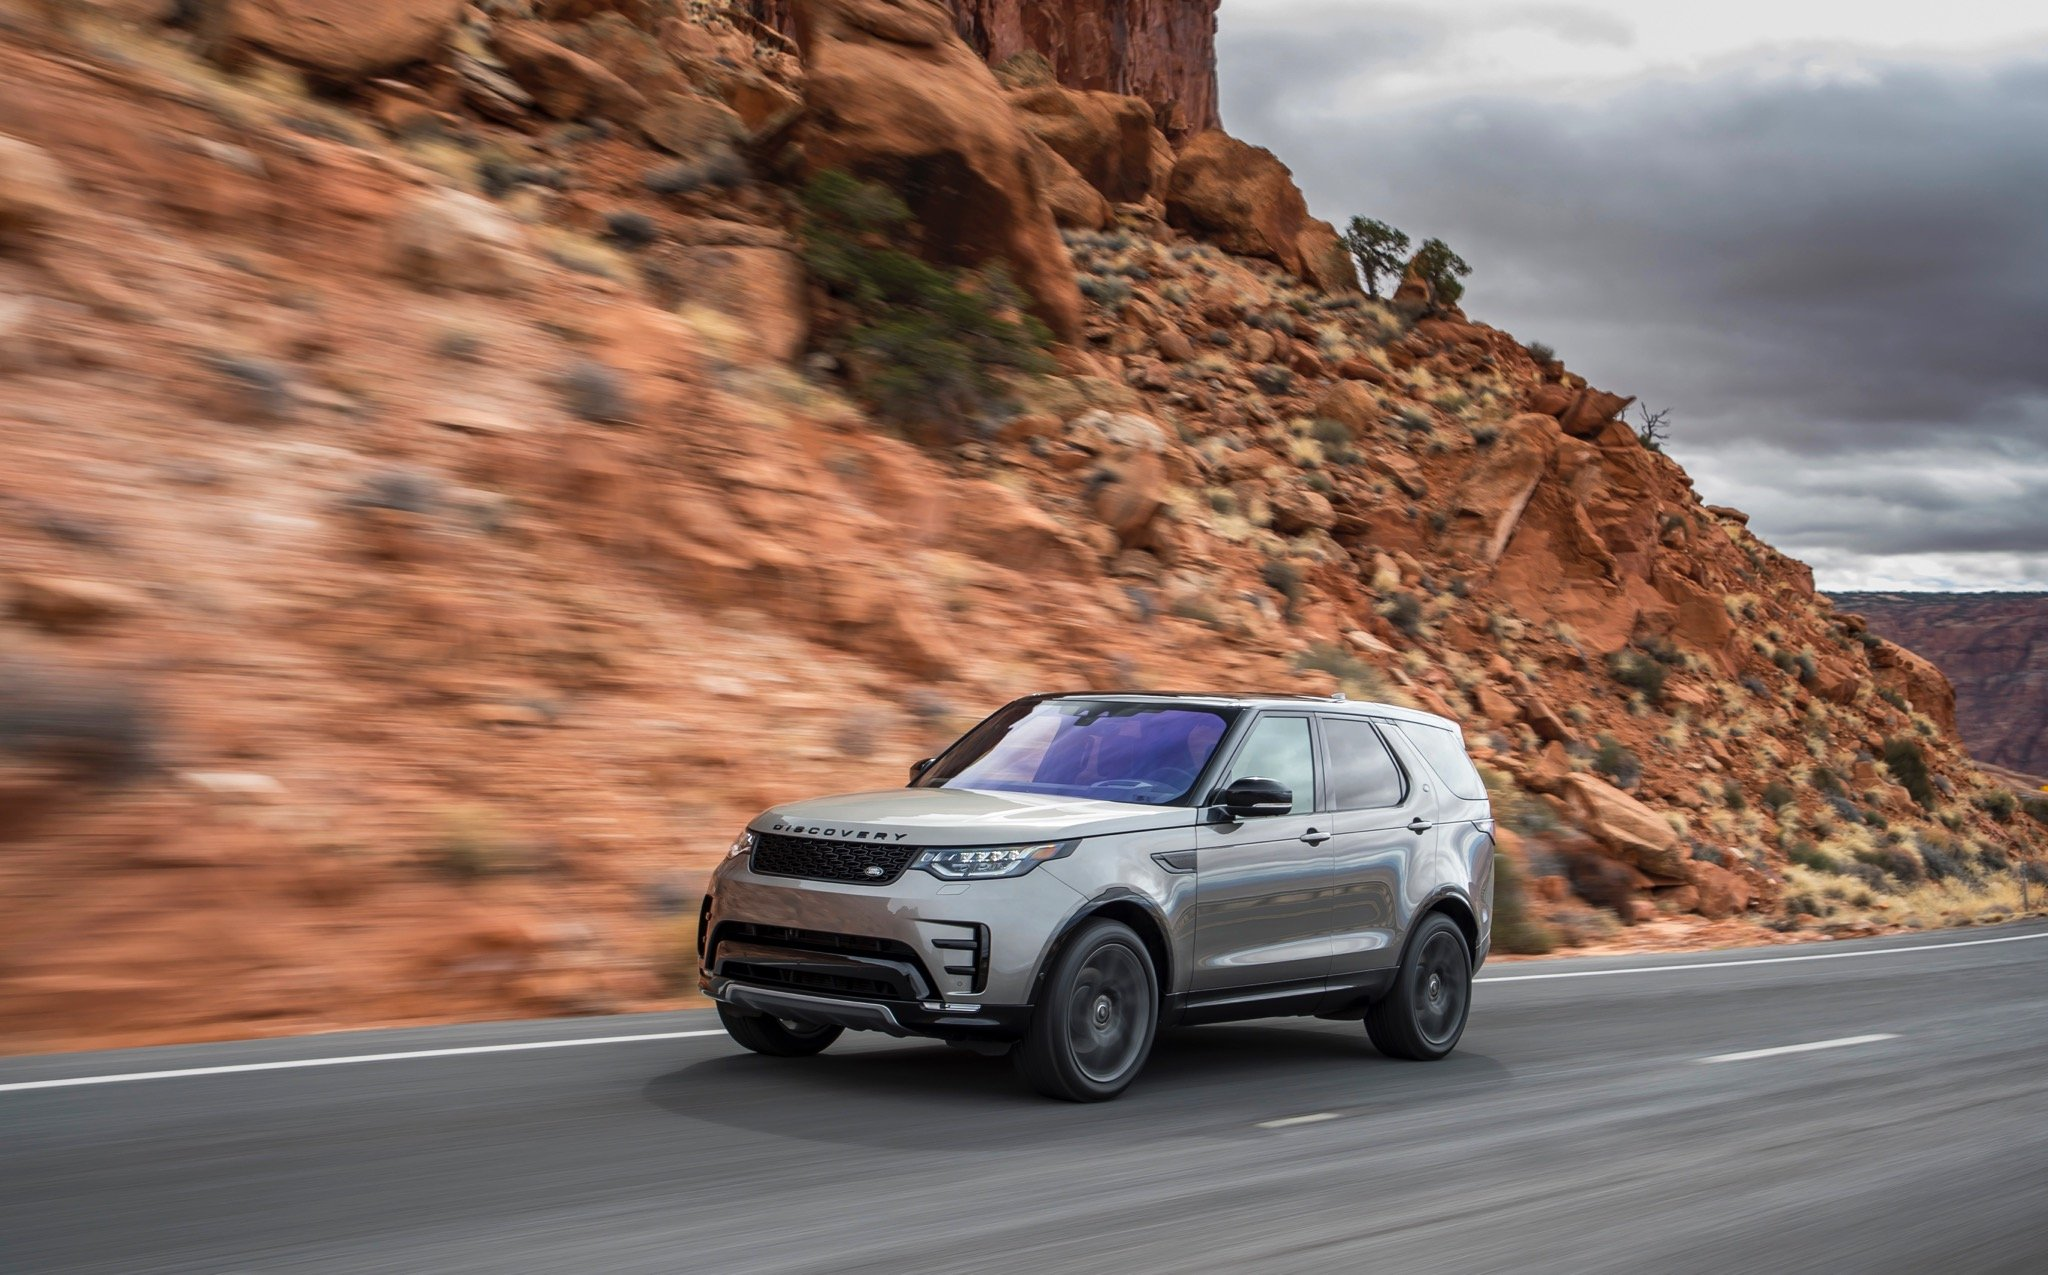 2017 land rover discovery - photo #38